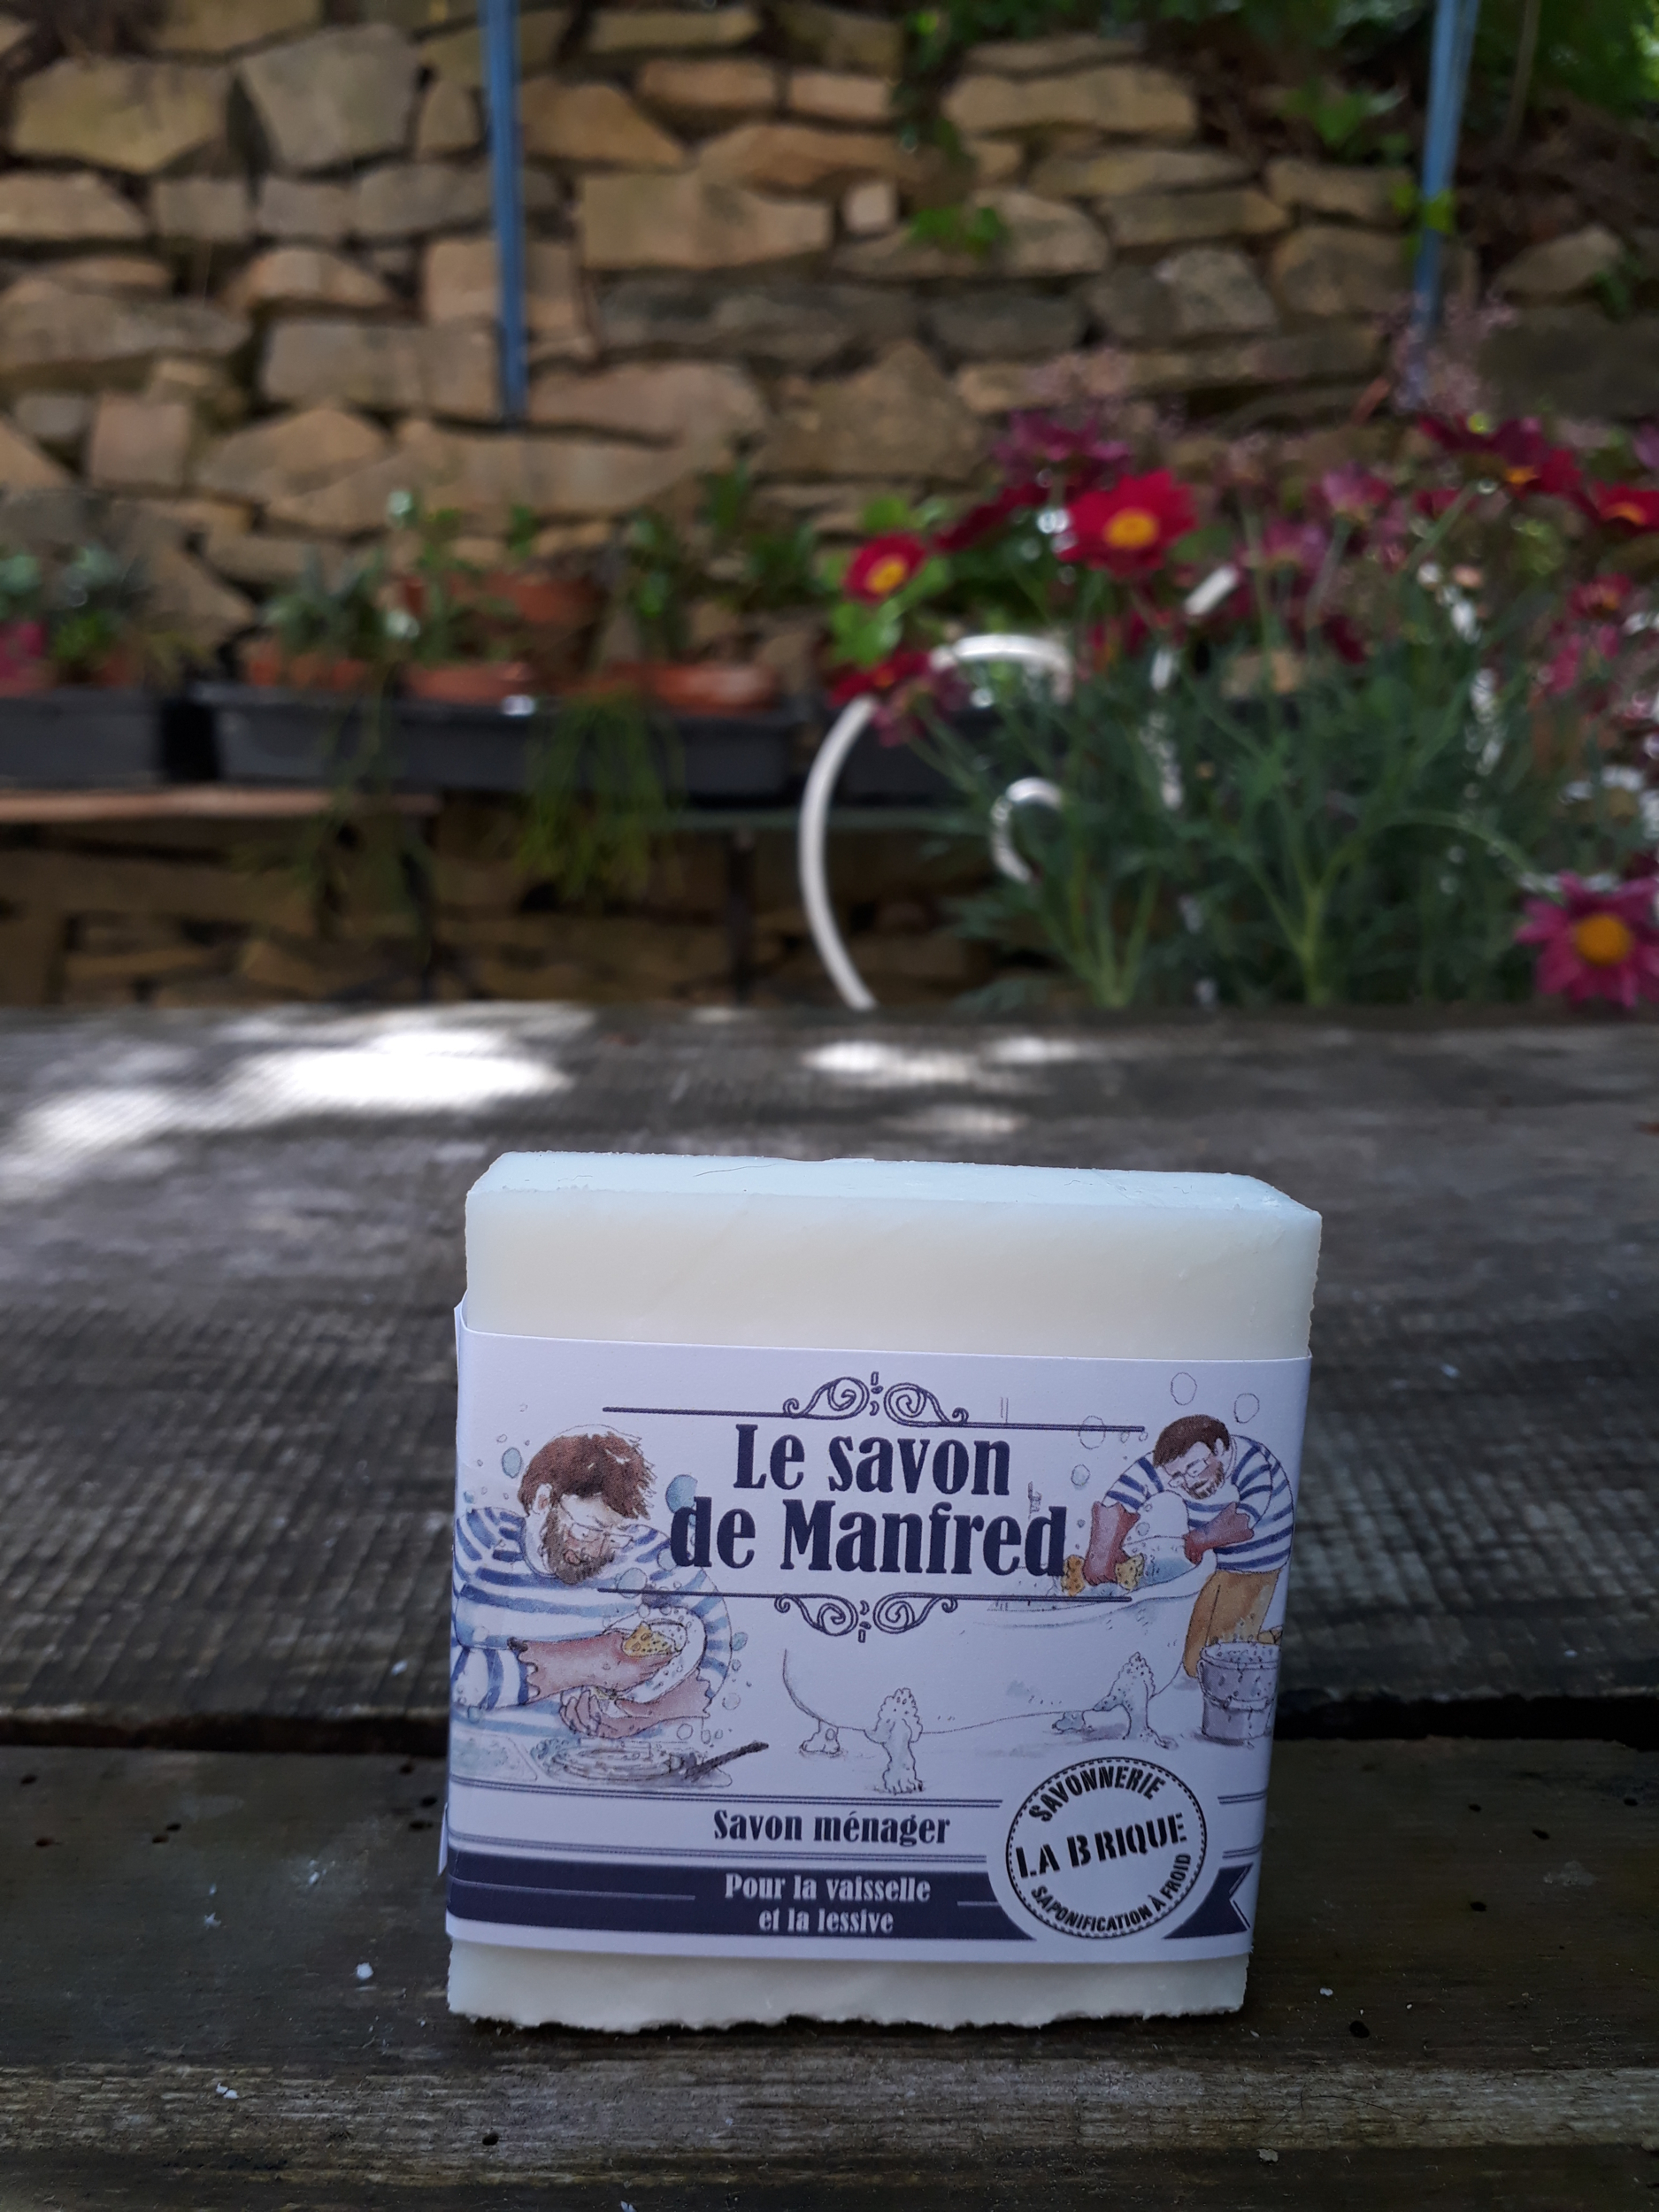 Le savon ménager de Manfred